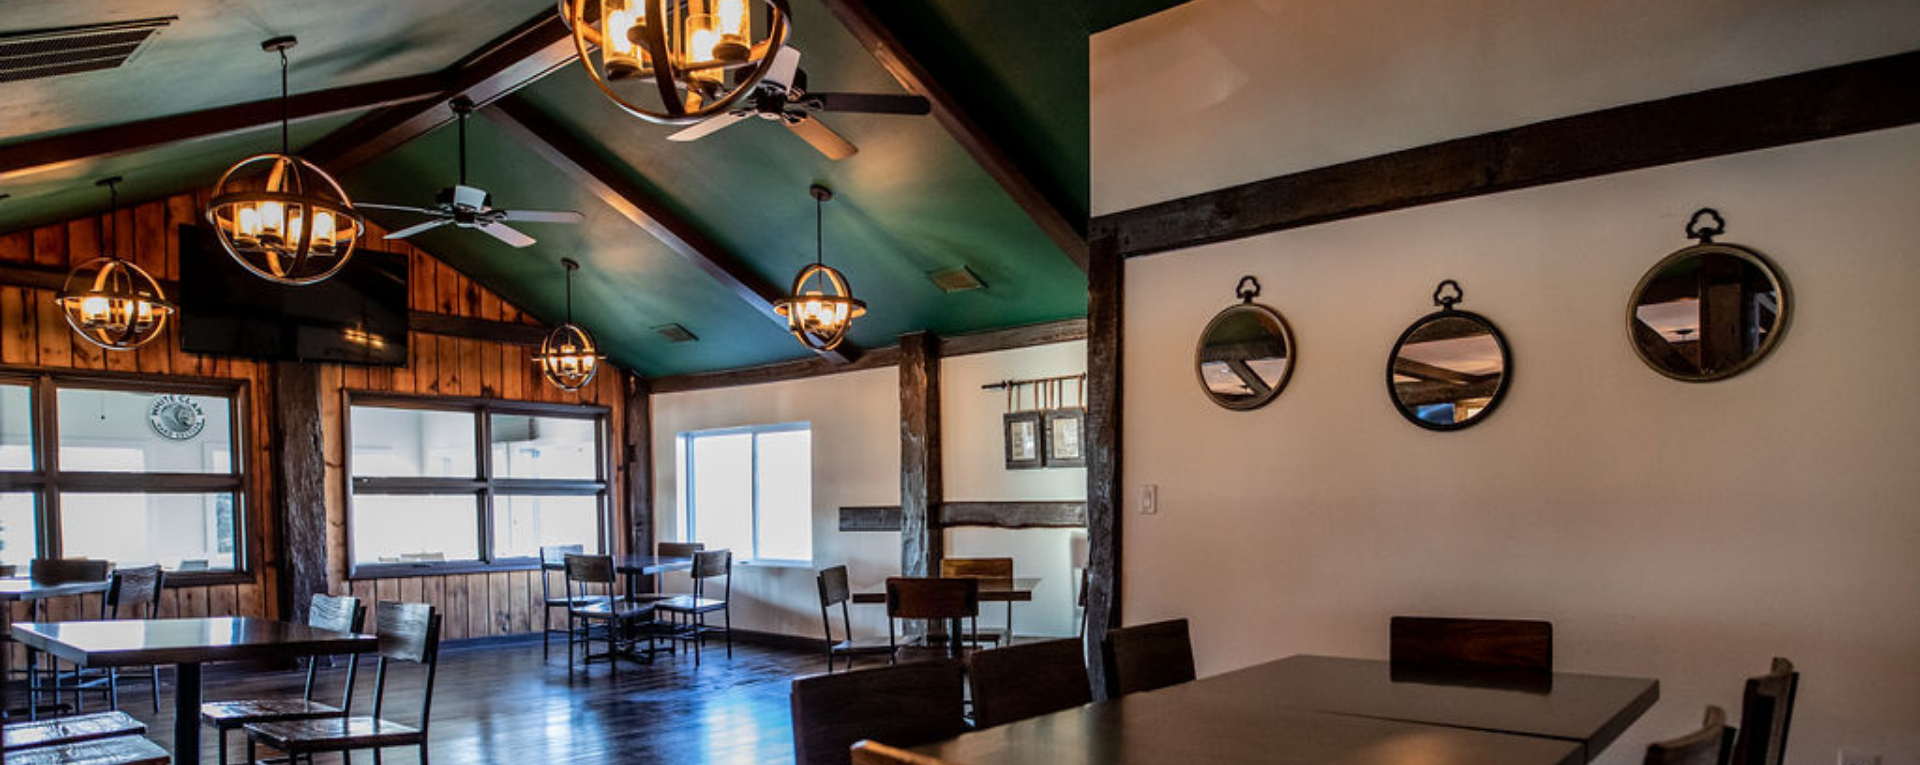 interior shot - dining room at The Wood in Baldwinsville, NY